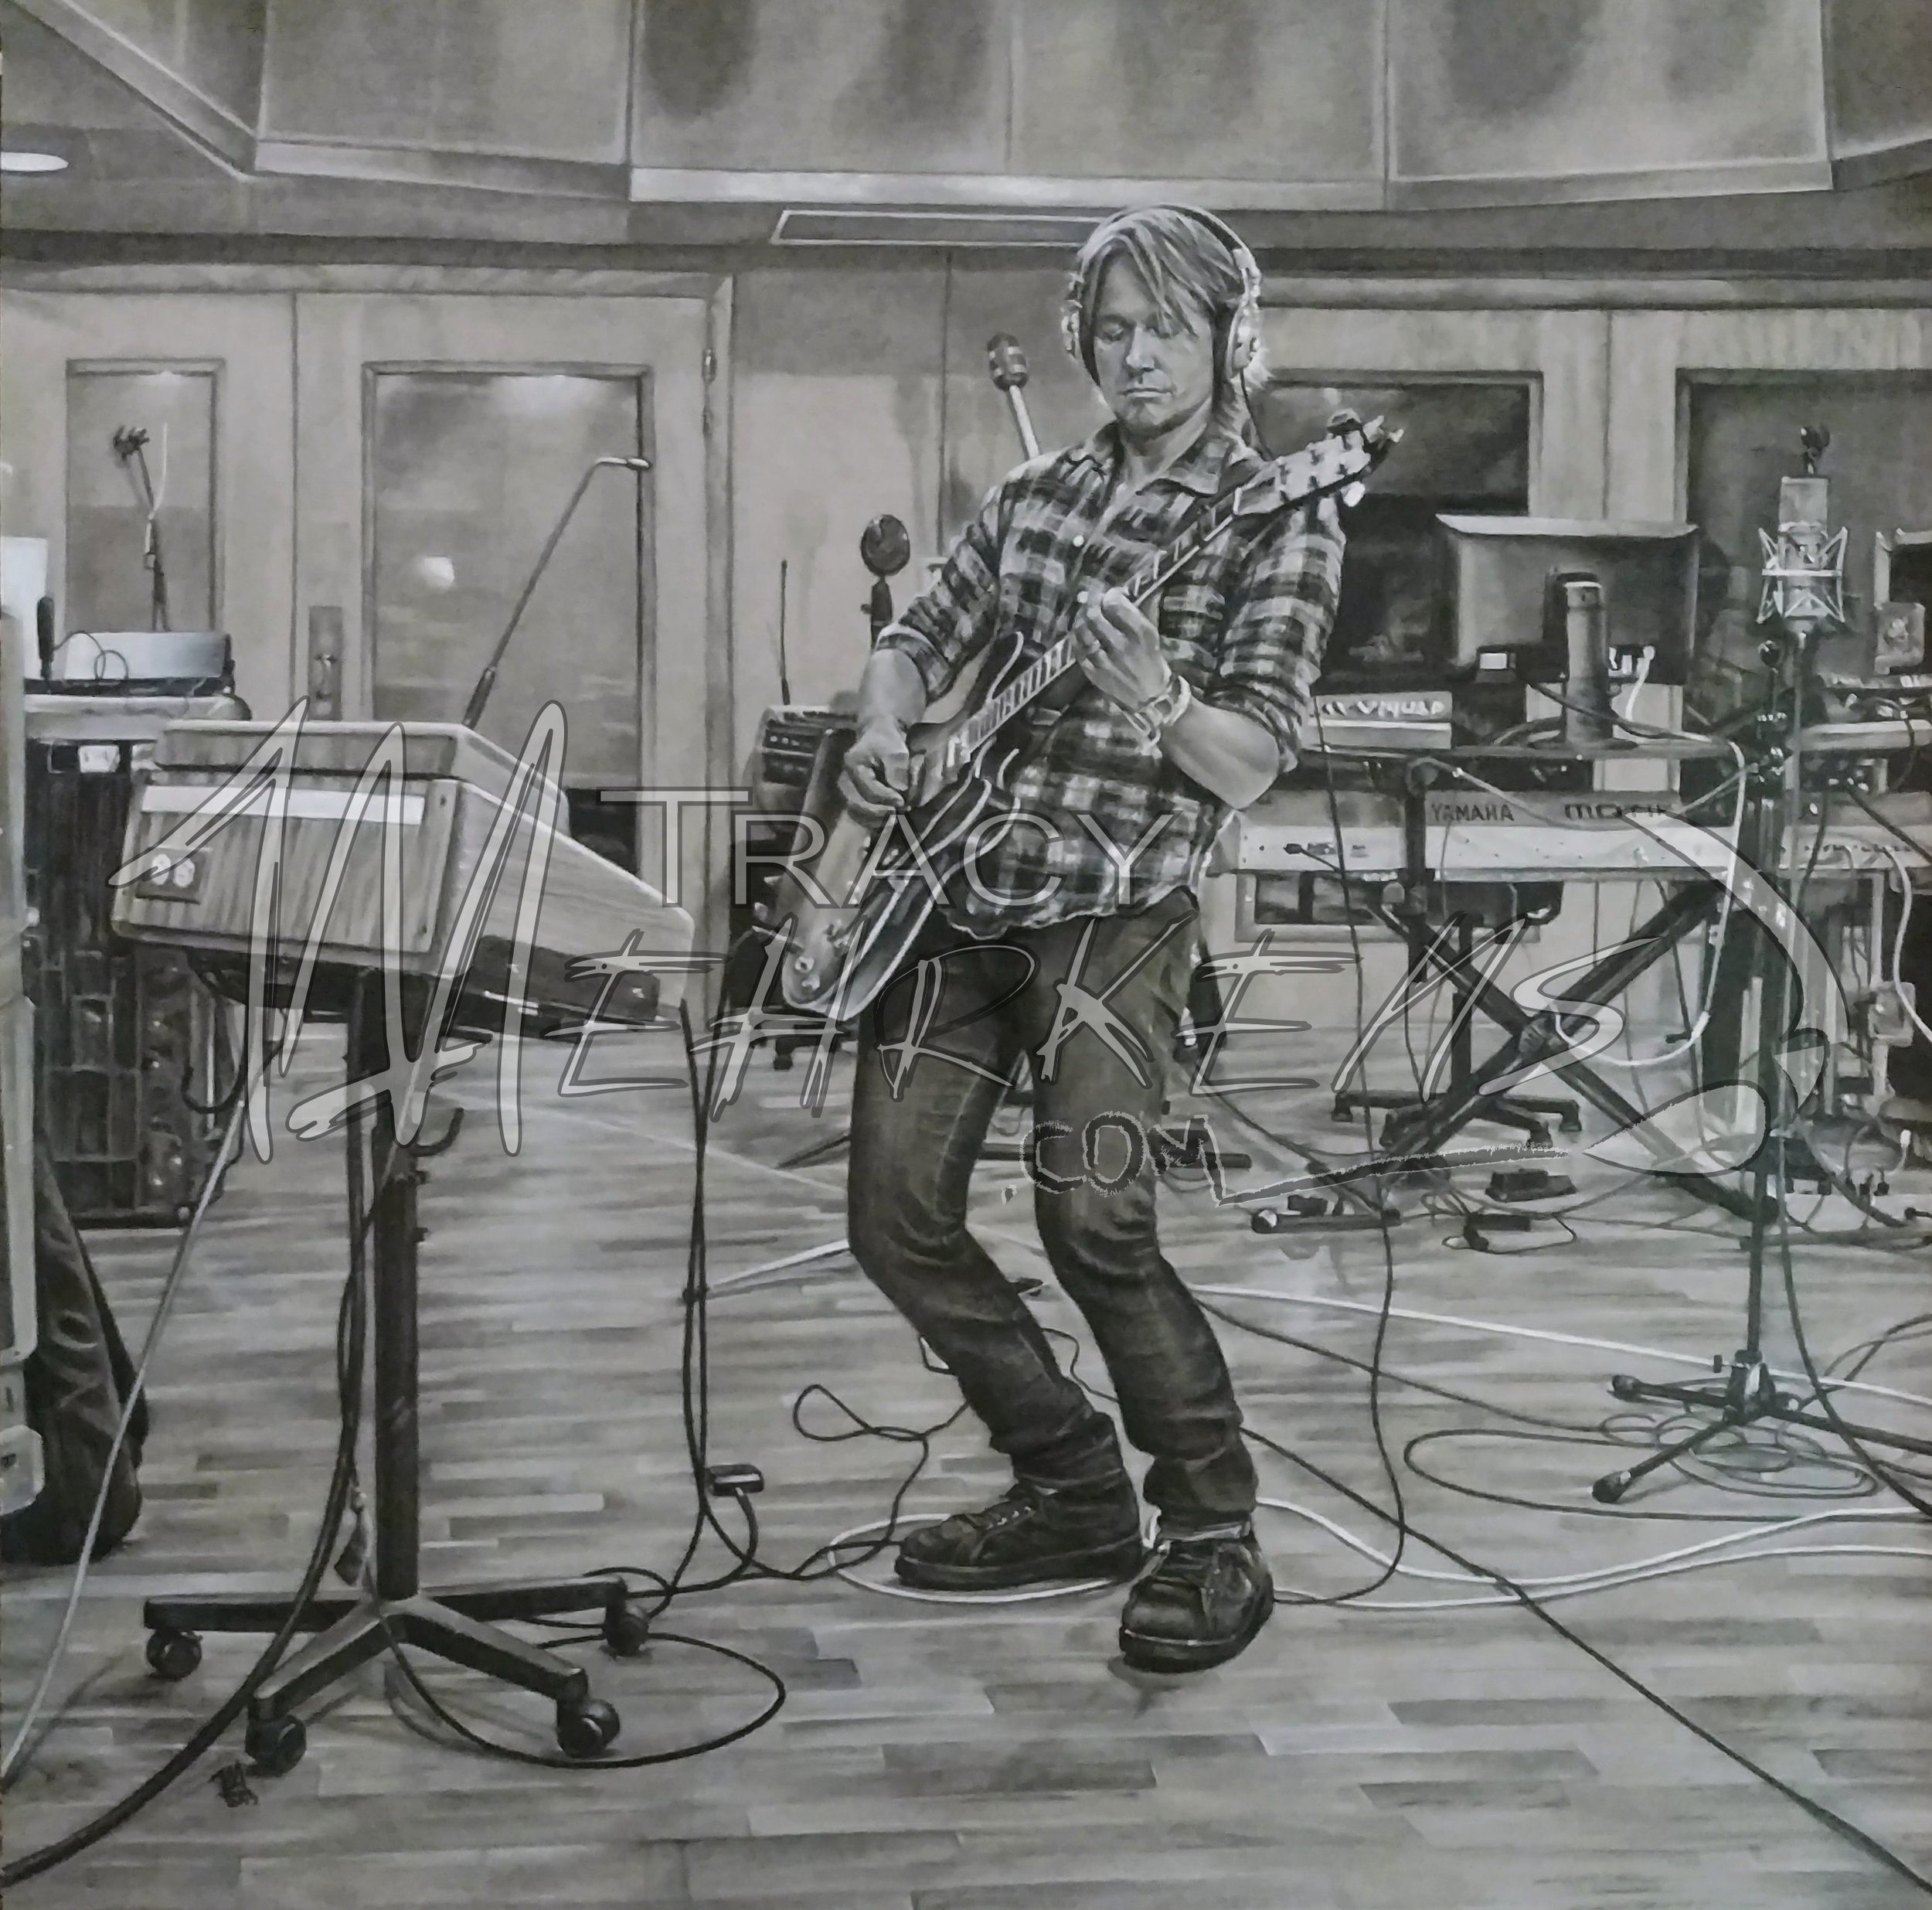 Keith Urban in Studio. Charcoal on Paper. 24x24 in. 2017.